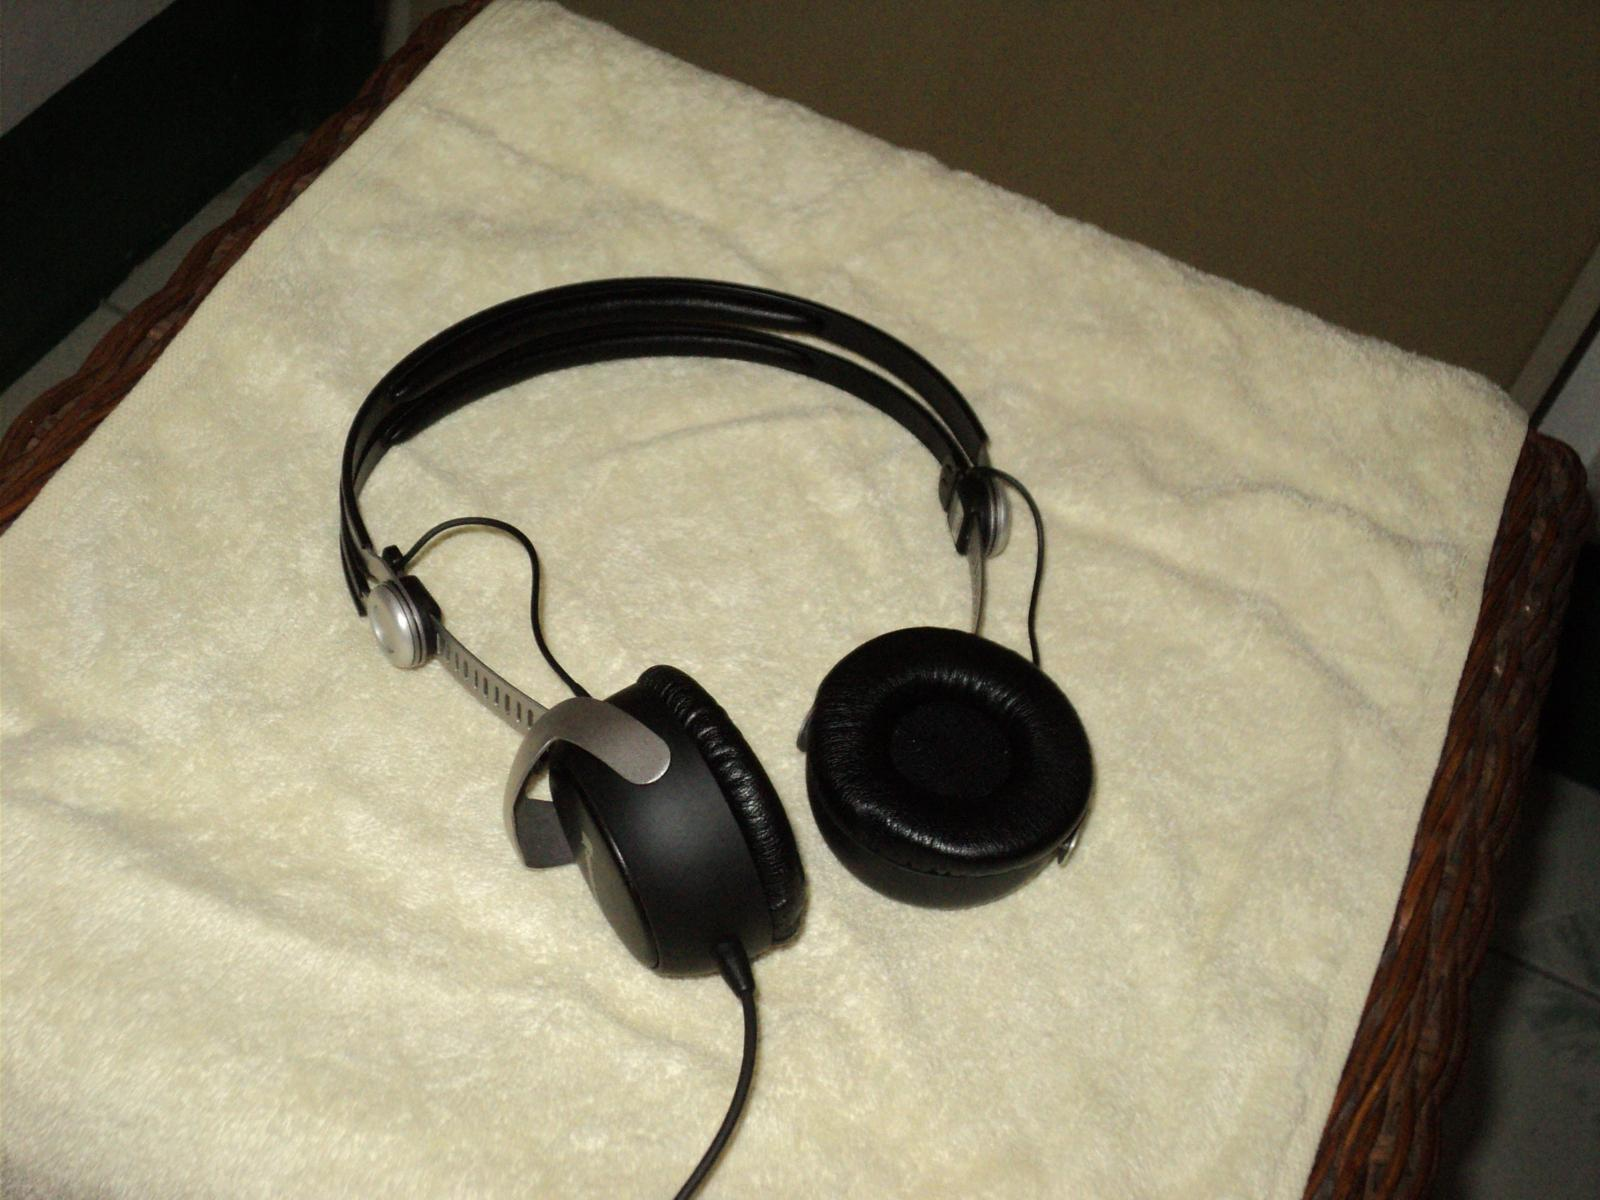 Beyerdynamic DT135 headphone